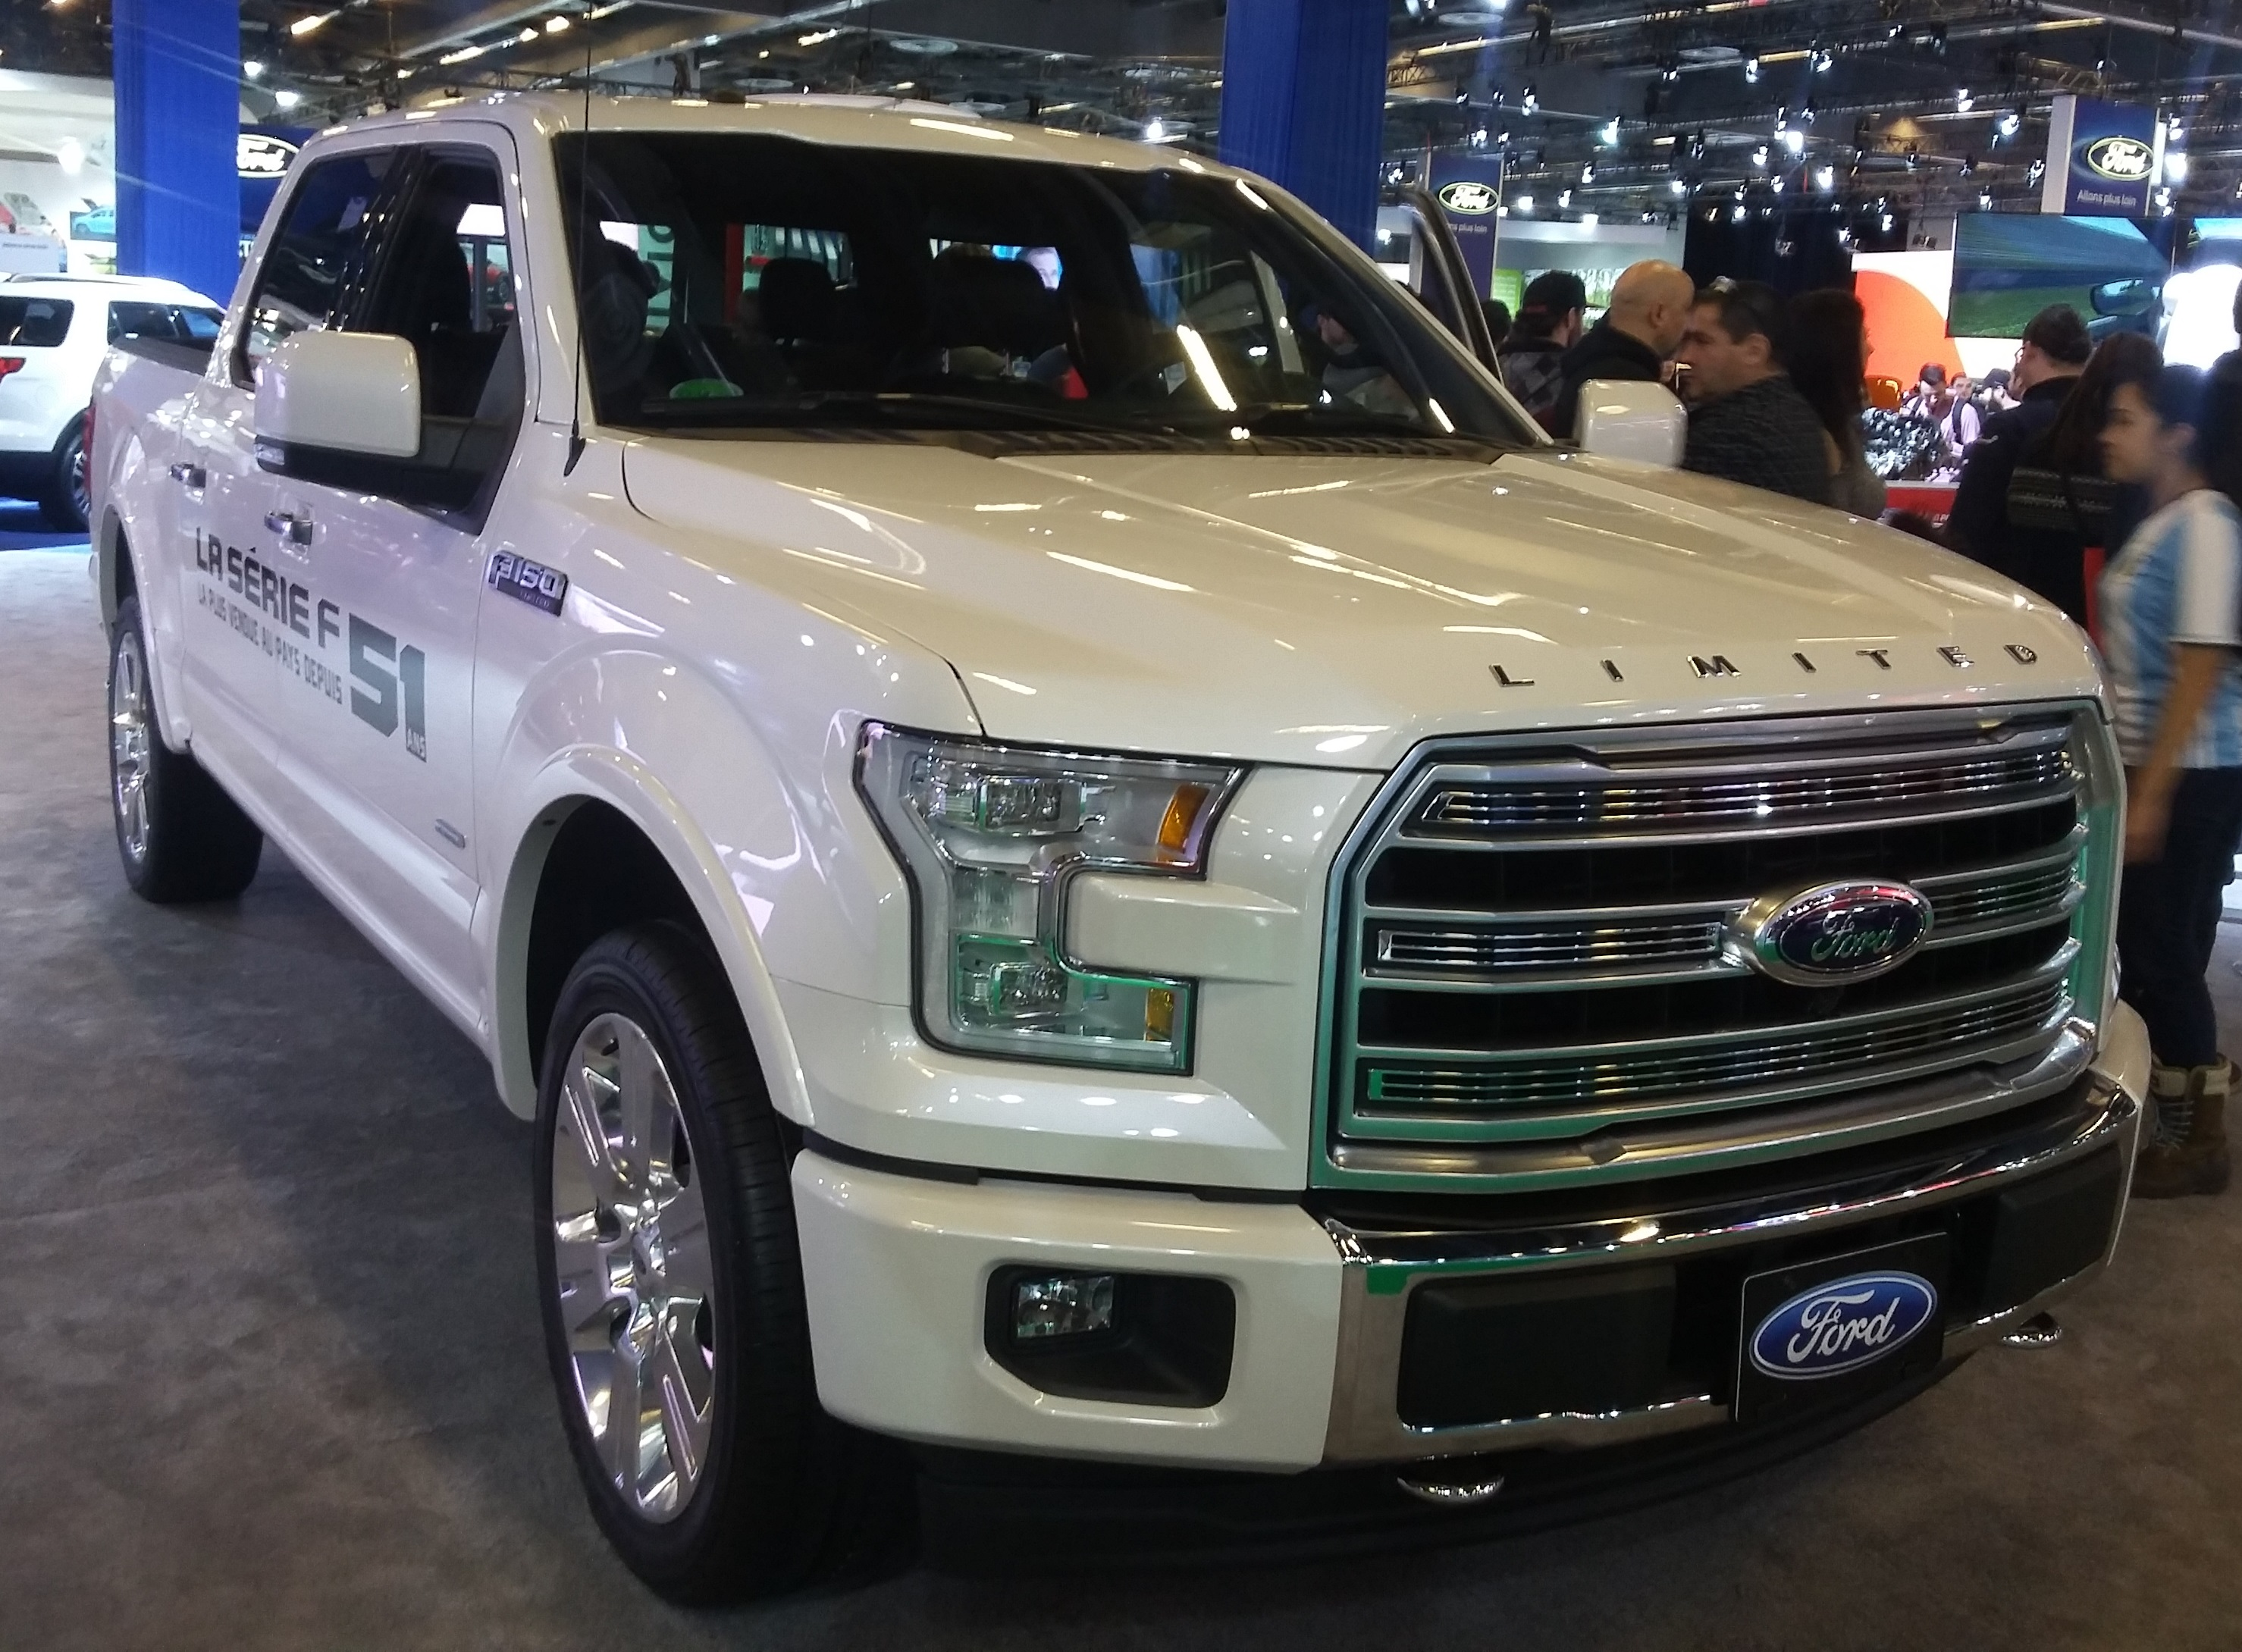 hd audio truck first models is model ca cd premium trucks b radio highlights ford limited the and o web system with single f play